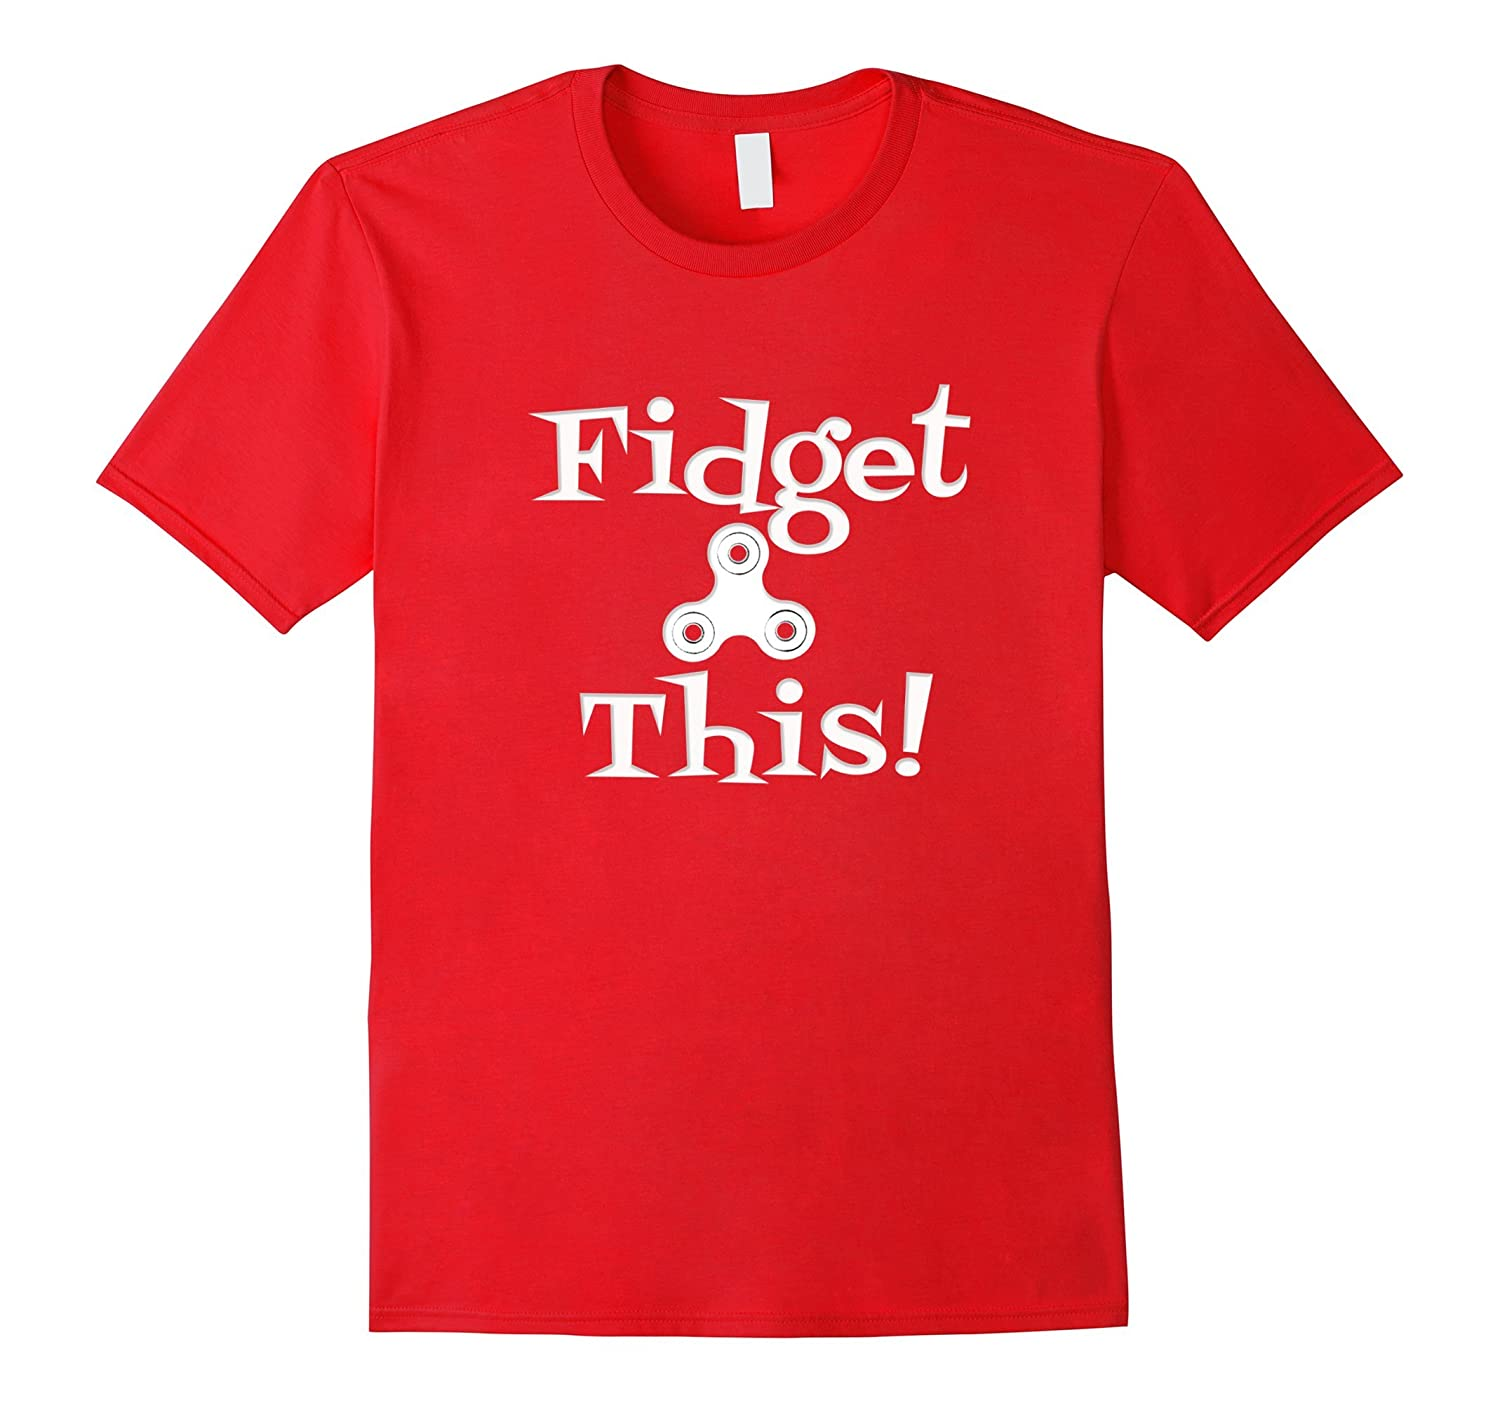 Fidget This Spinner TShirt for Fun Spin Toy Craze-Vaci